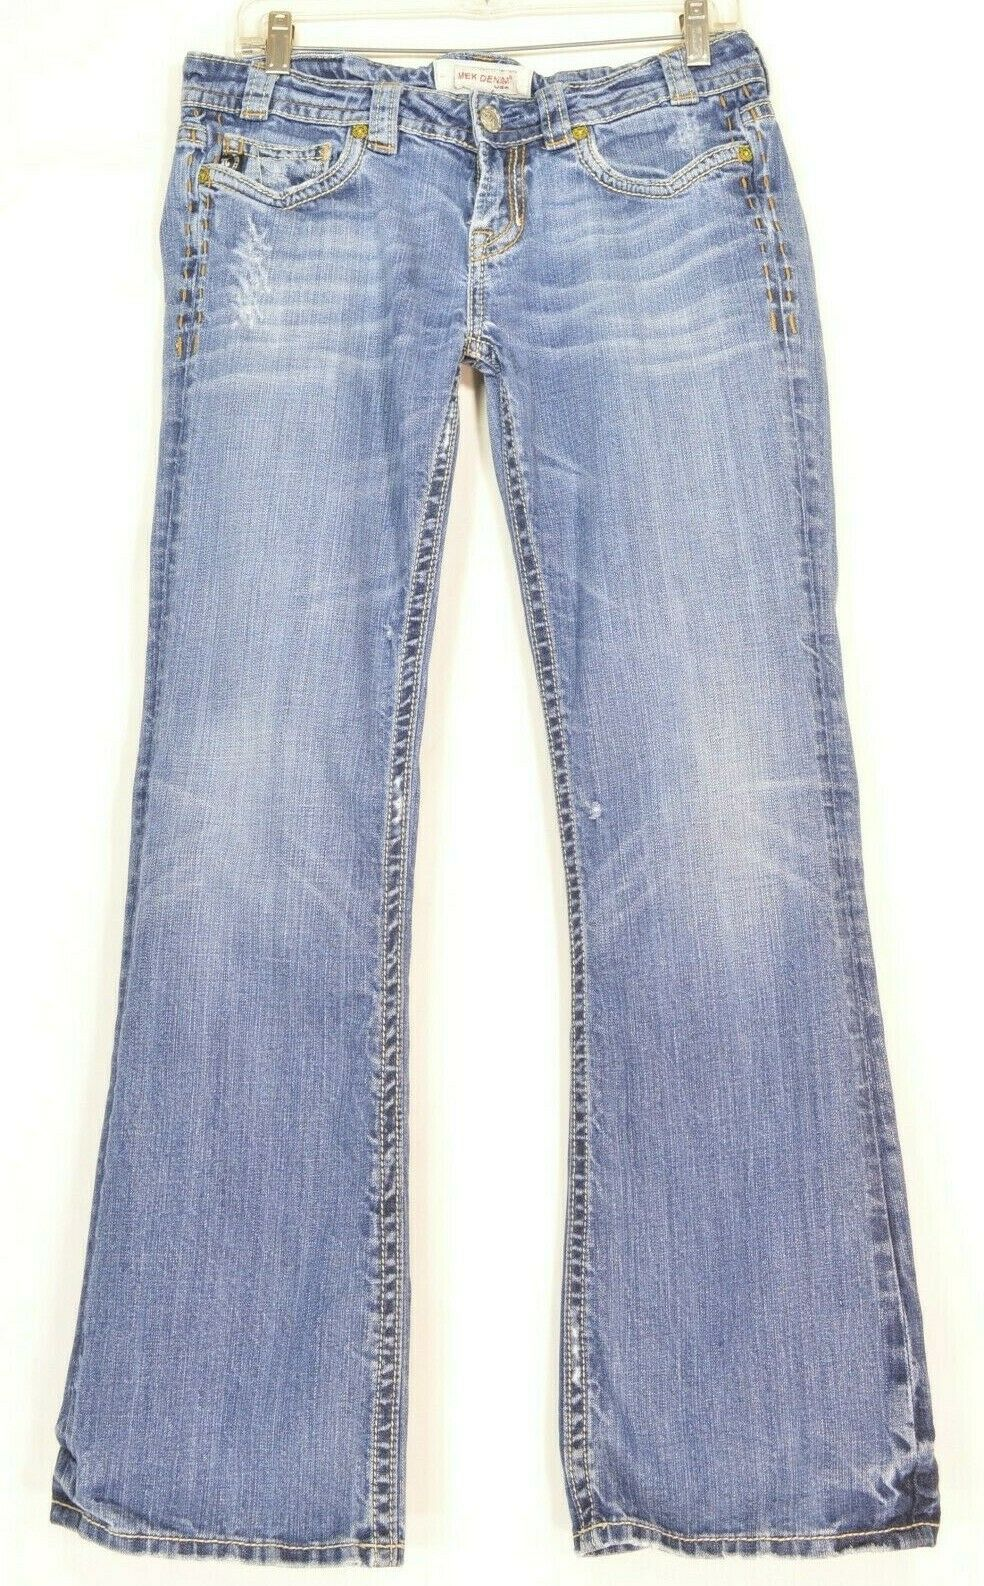 Primary image for MEK jeans Oaxaca 31 x 32.5 flap back pockets distressed rumpled legs bootcut